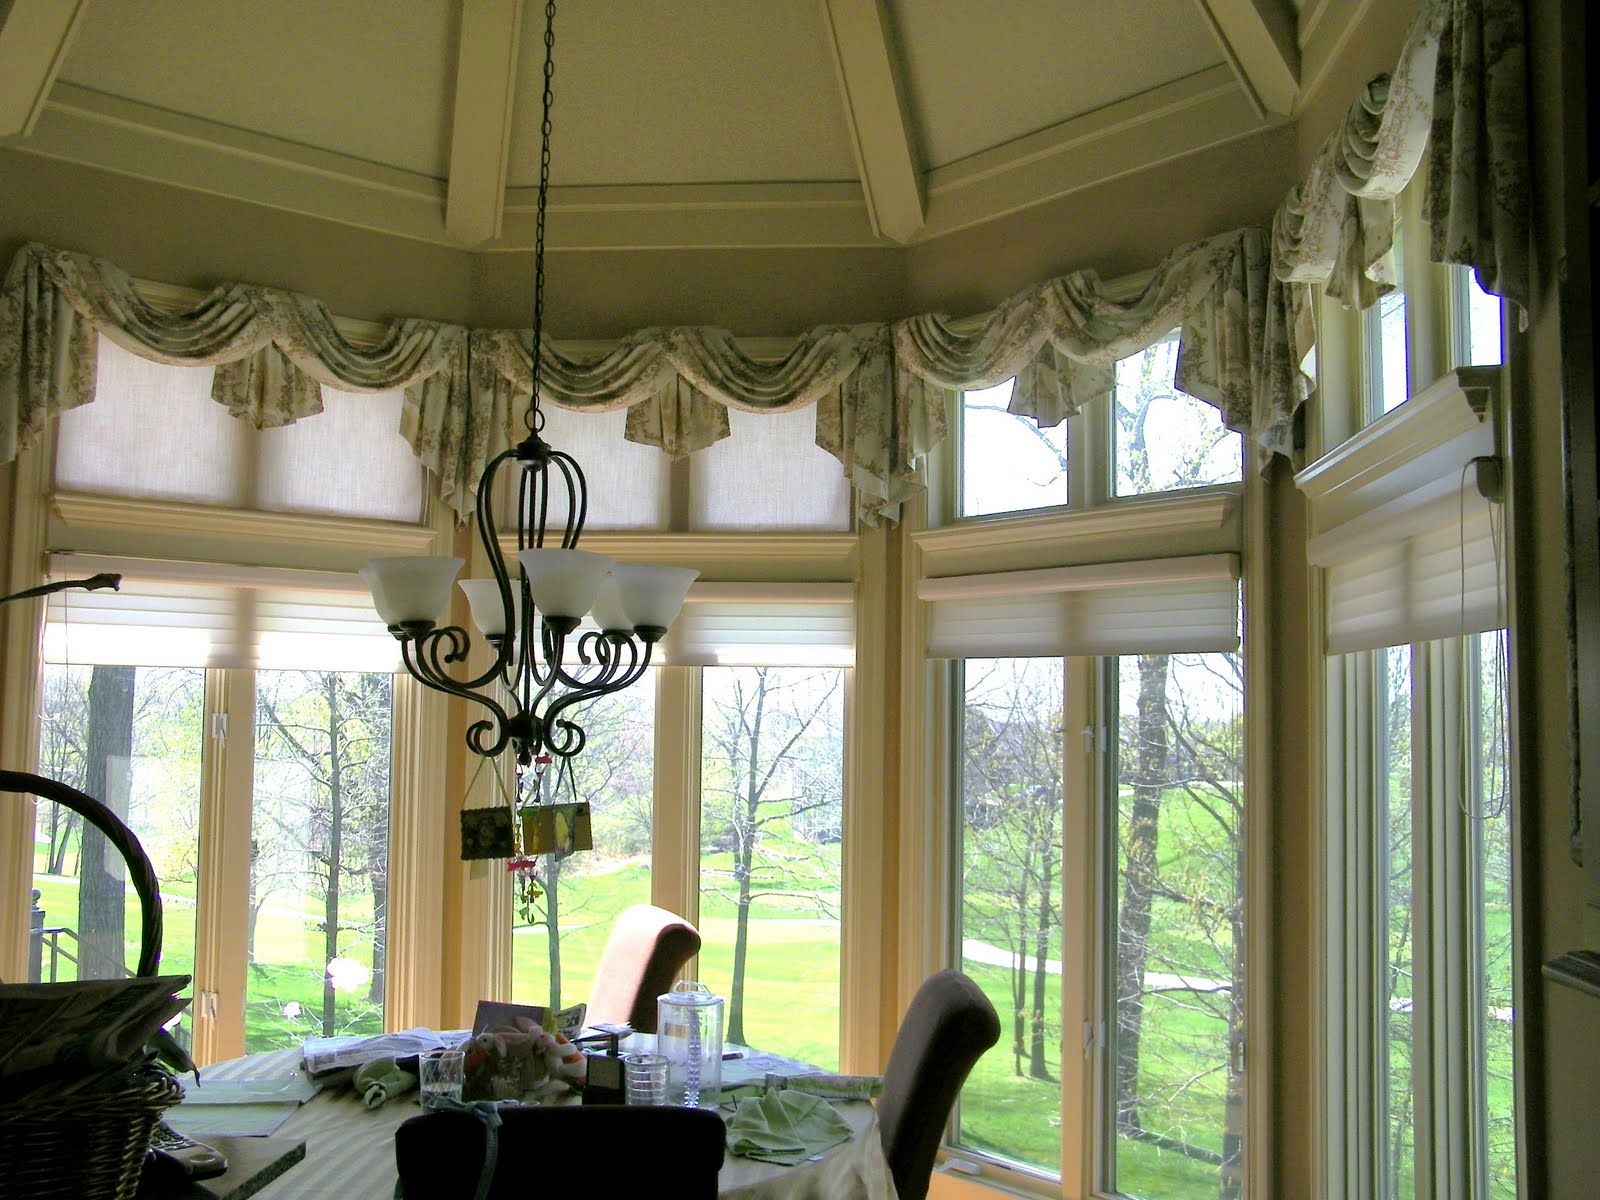 Maison decor twins curtains and hobby lobby in kc Dining room drapes ideas